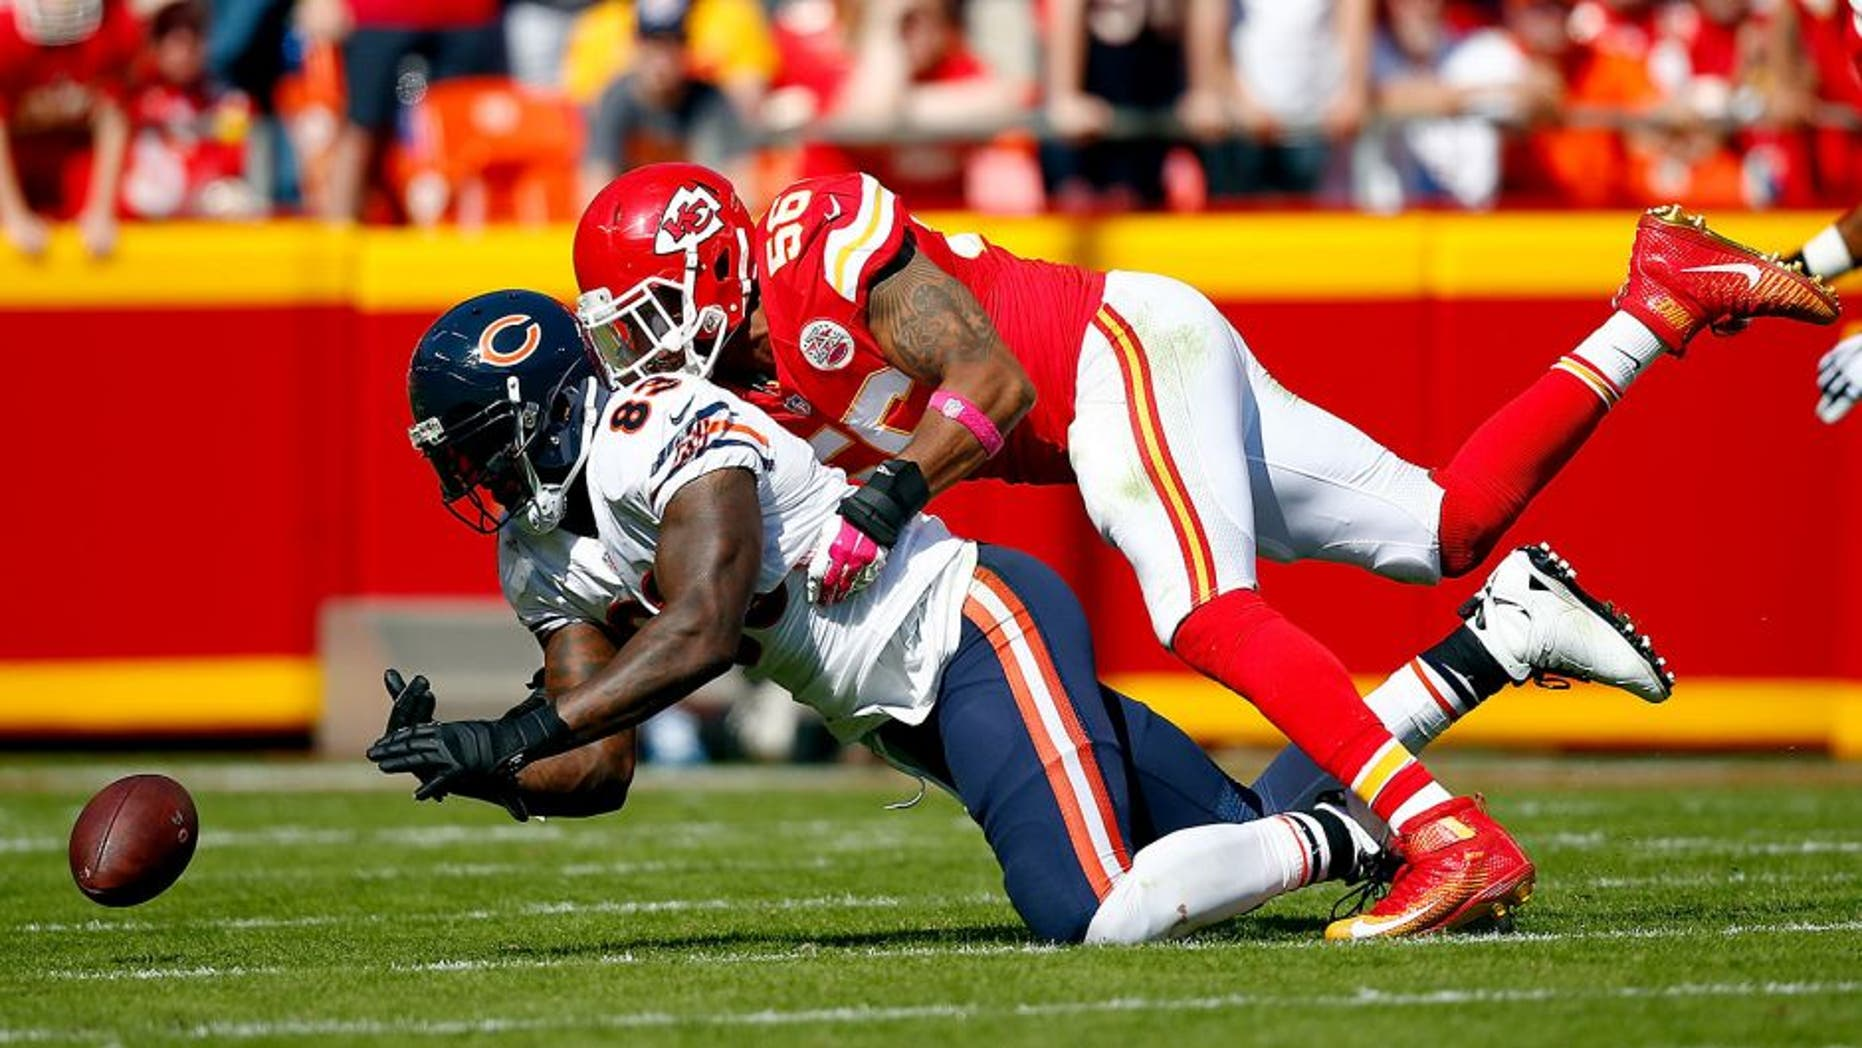 KANSAS CITY, MO - OCTOBER 11: Inside linebacker Derrick Johnson #56 of the Kansas City Chiefs breaks up a pass intended for tight end Martellus Bennett #83 of the Chicago Bears during the game at Arrowhead Stadium on October 11, 2015 in Kansas City, Missouri. (Photo by Jamie Squire/Getty Images)